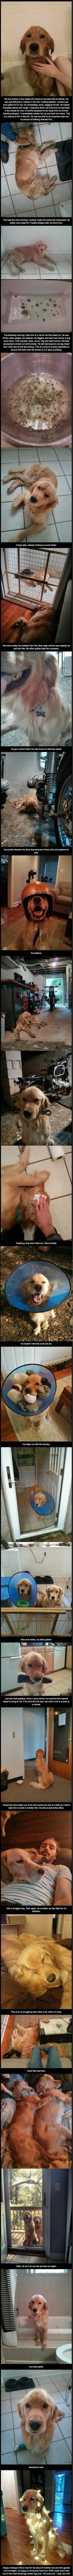 The heartwarming story of Bran the dog's life. happy ending. rescue pet.  golden